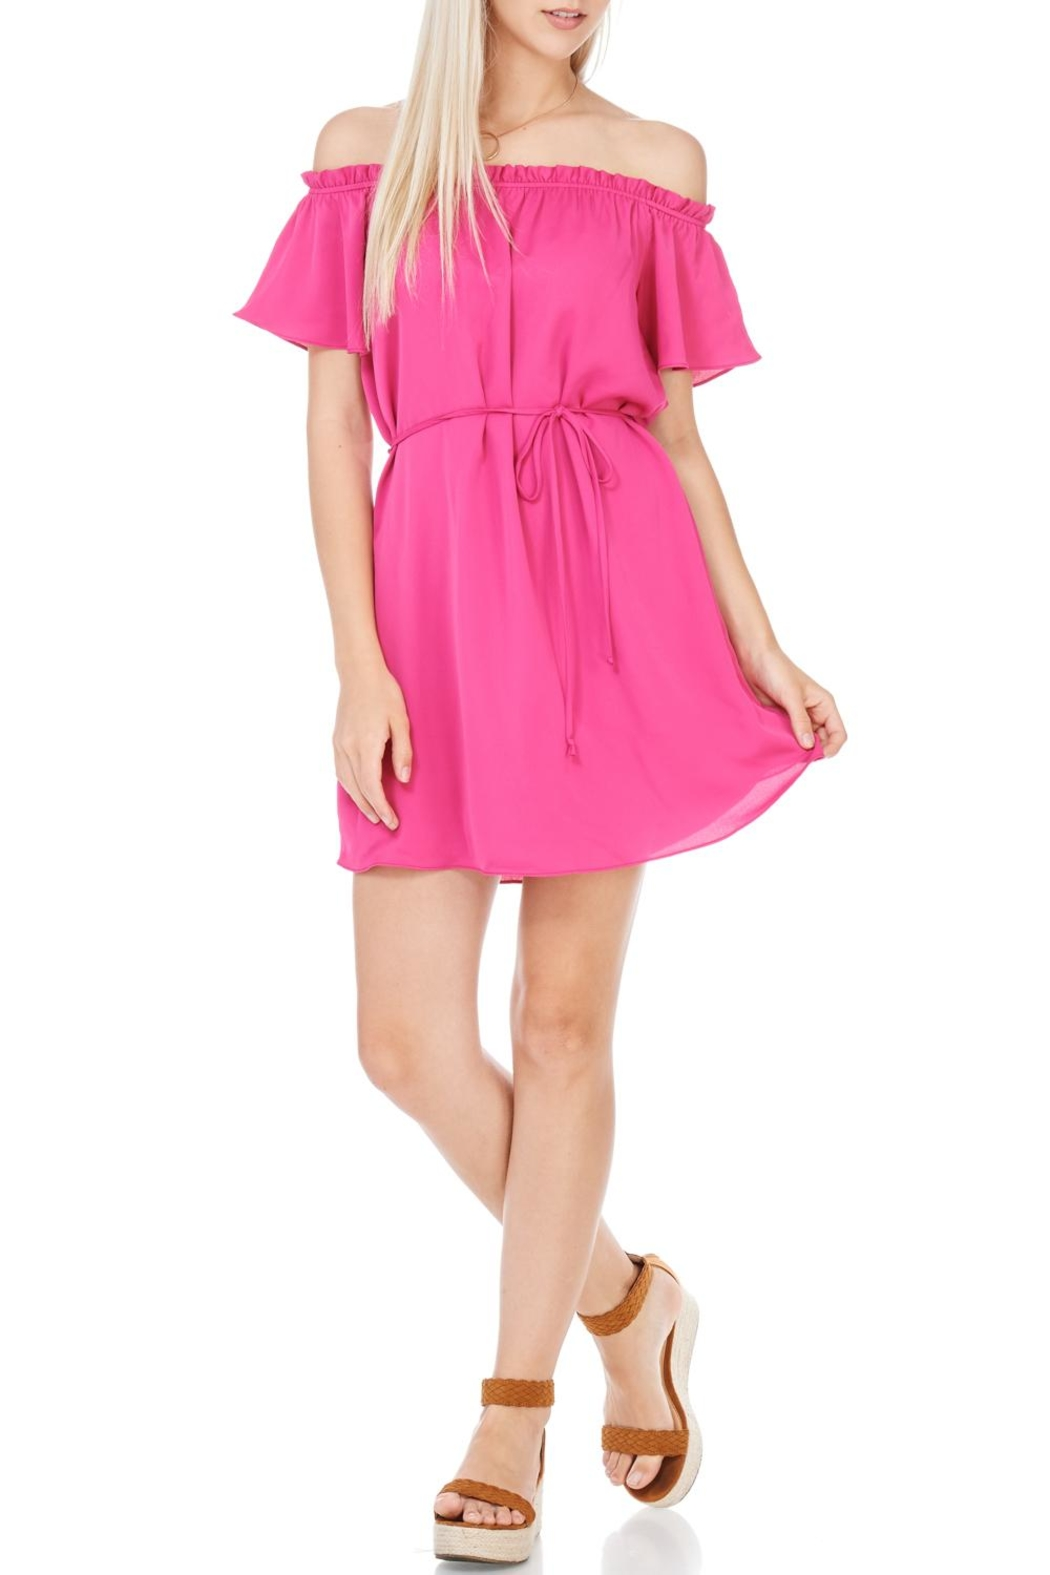 Everly Fuchsia Dress - Front Cropped Image